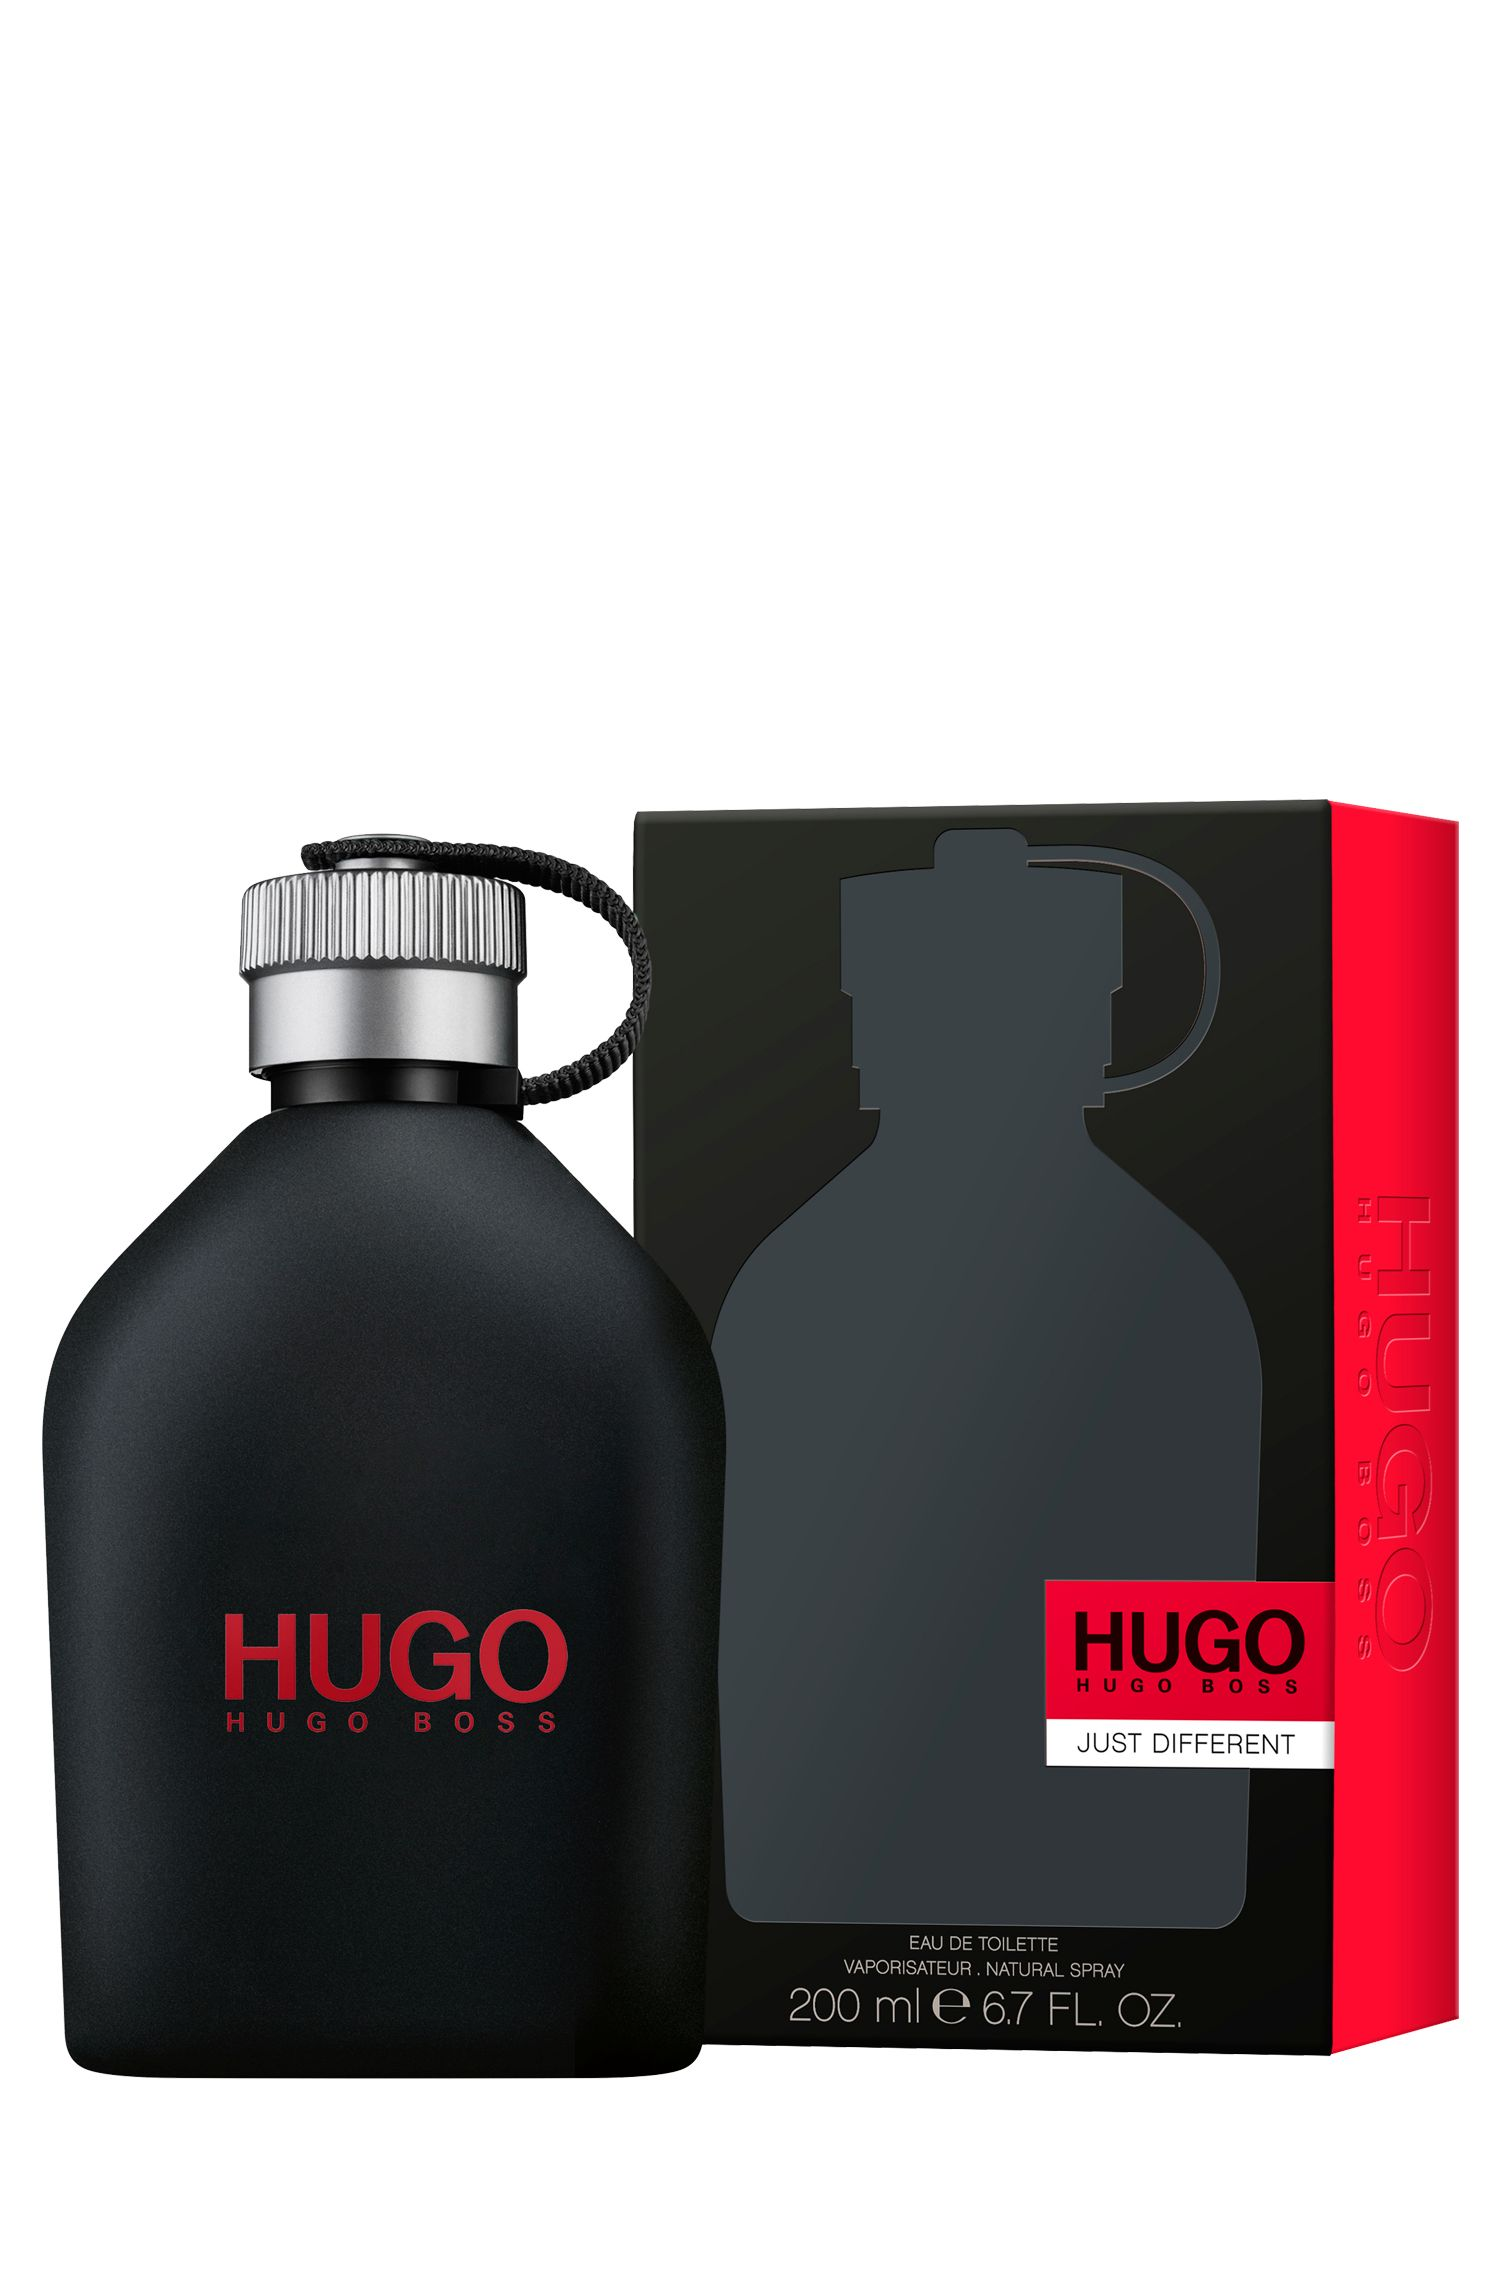 Eau de Toilette HUGO Just Different, 200 ml, Assorted-Pre-Pack